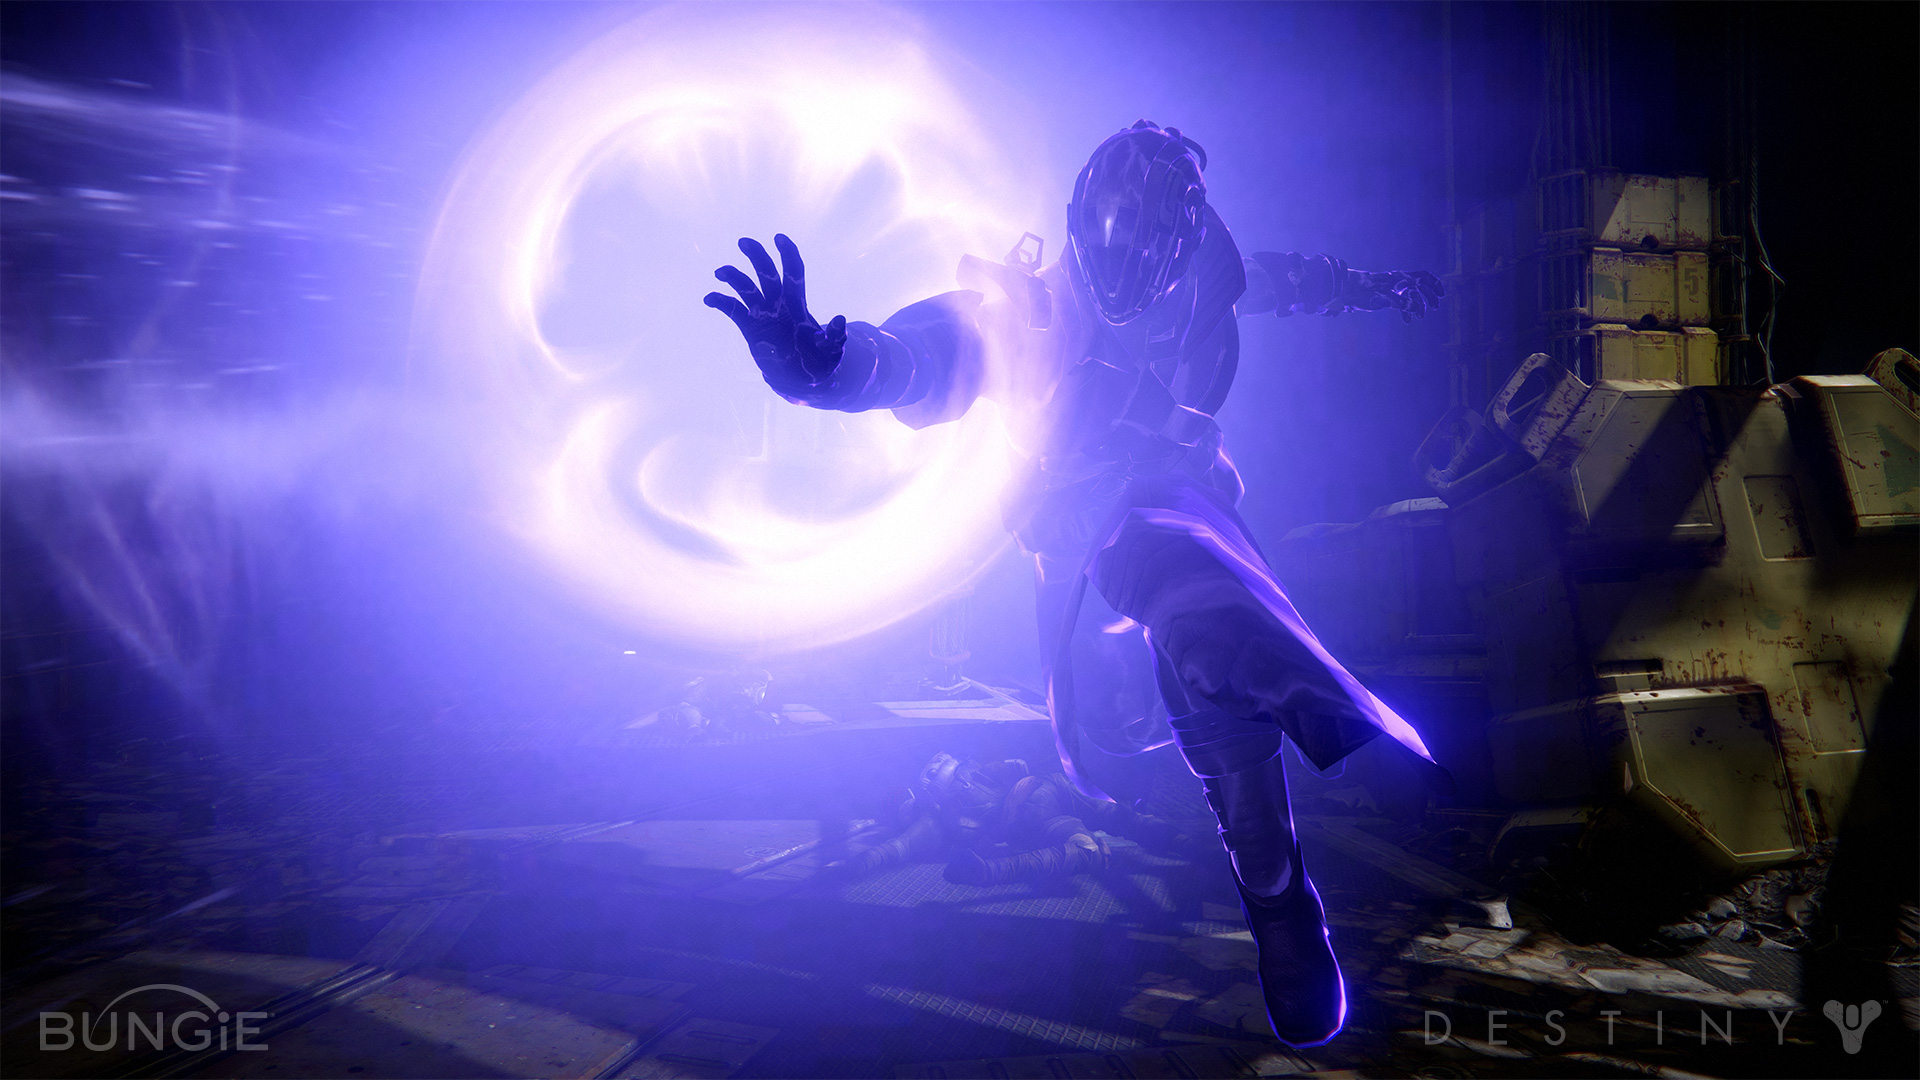 destiny warlock stormcaller images